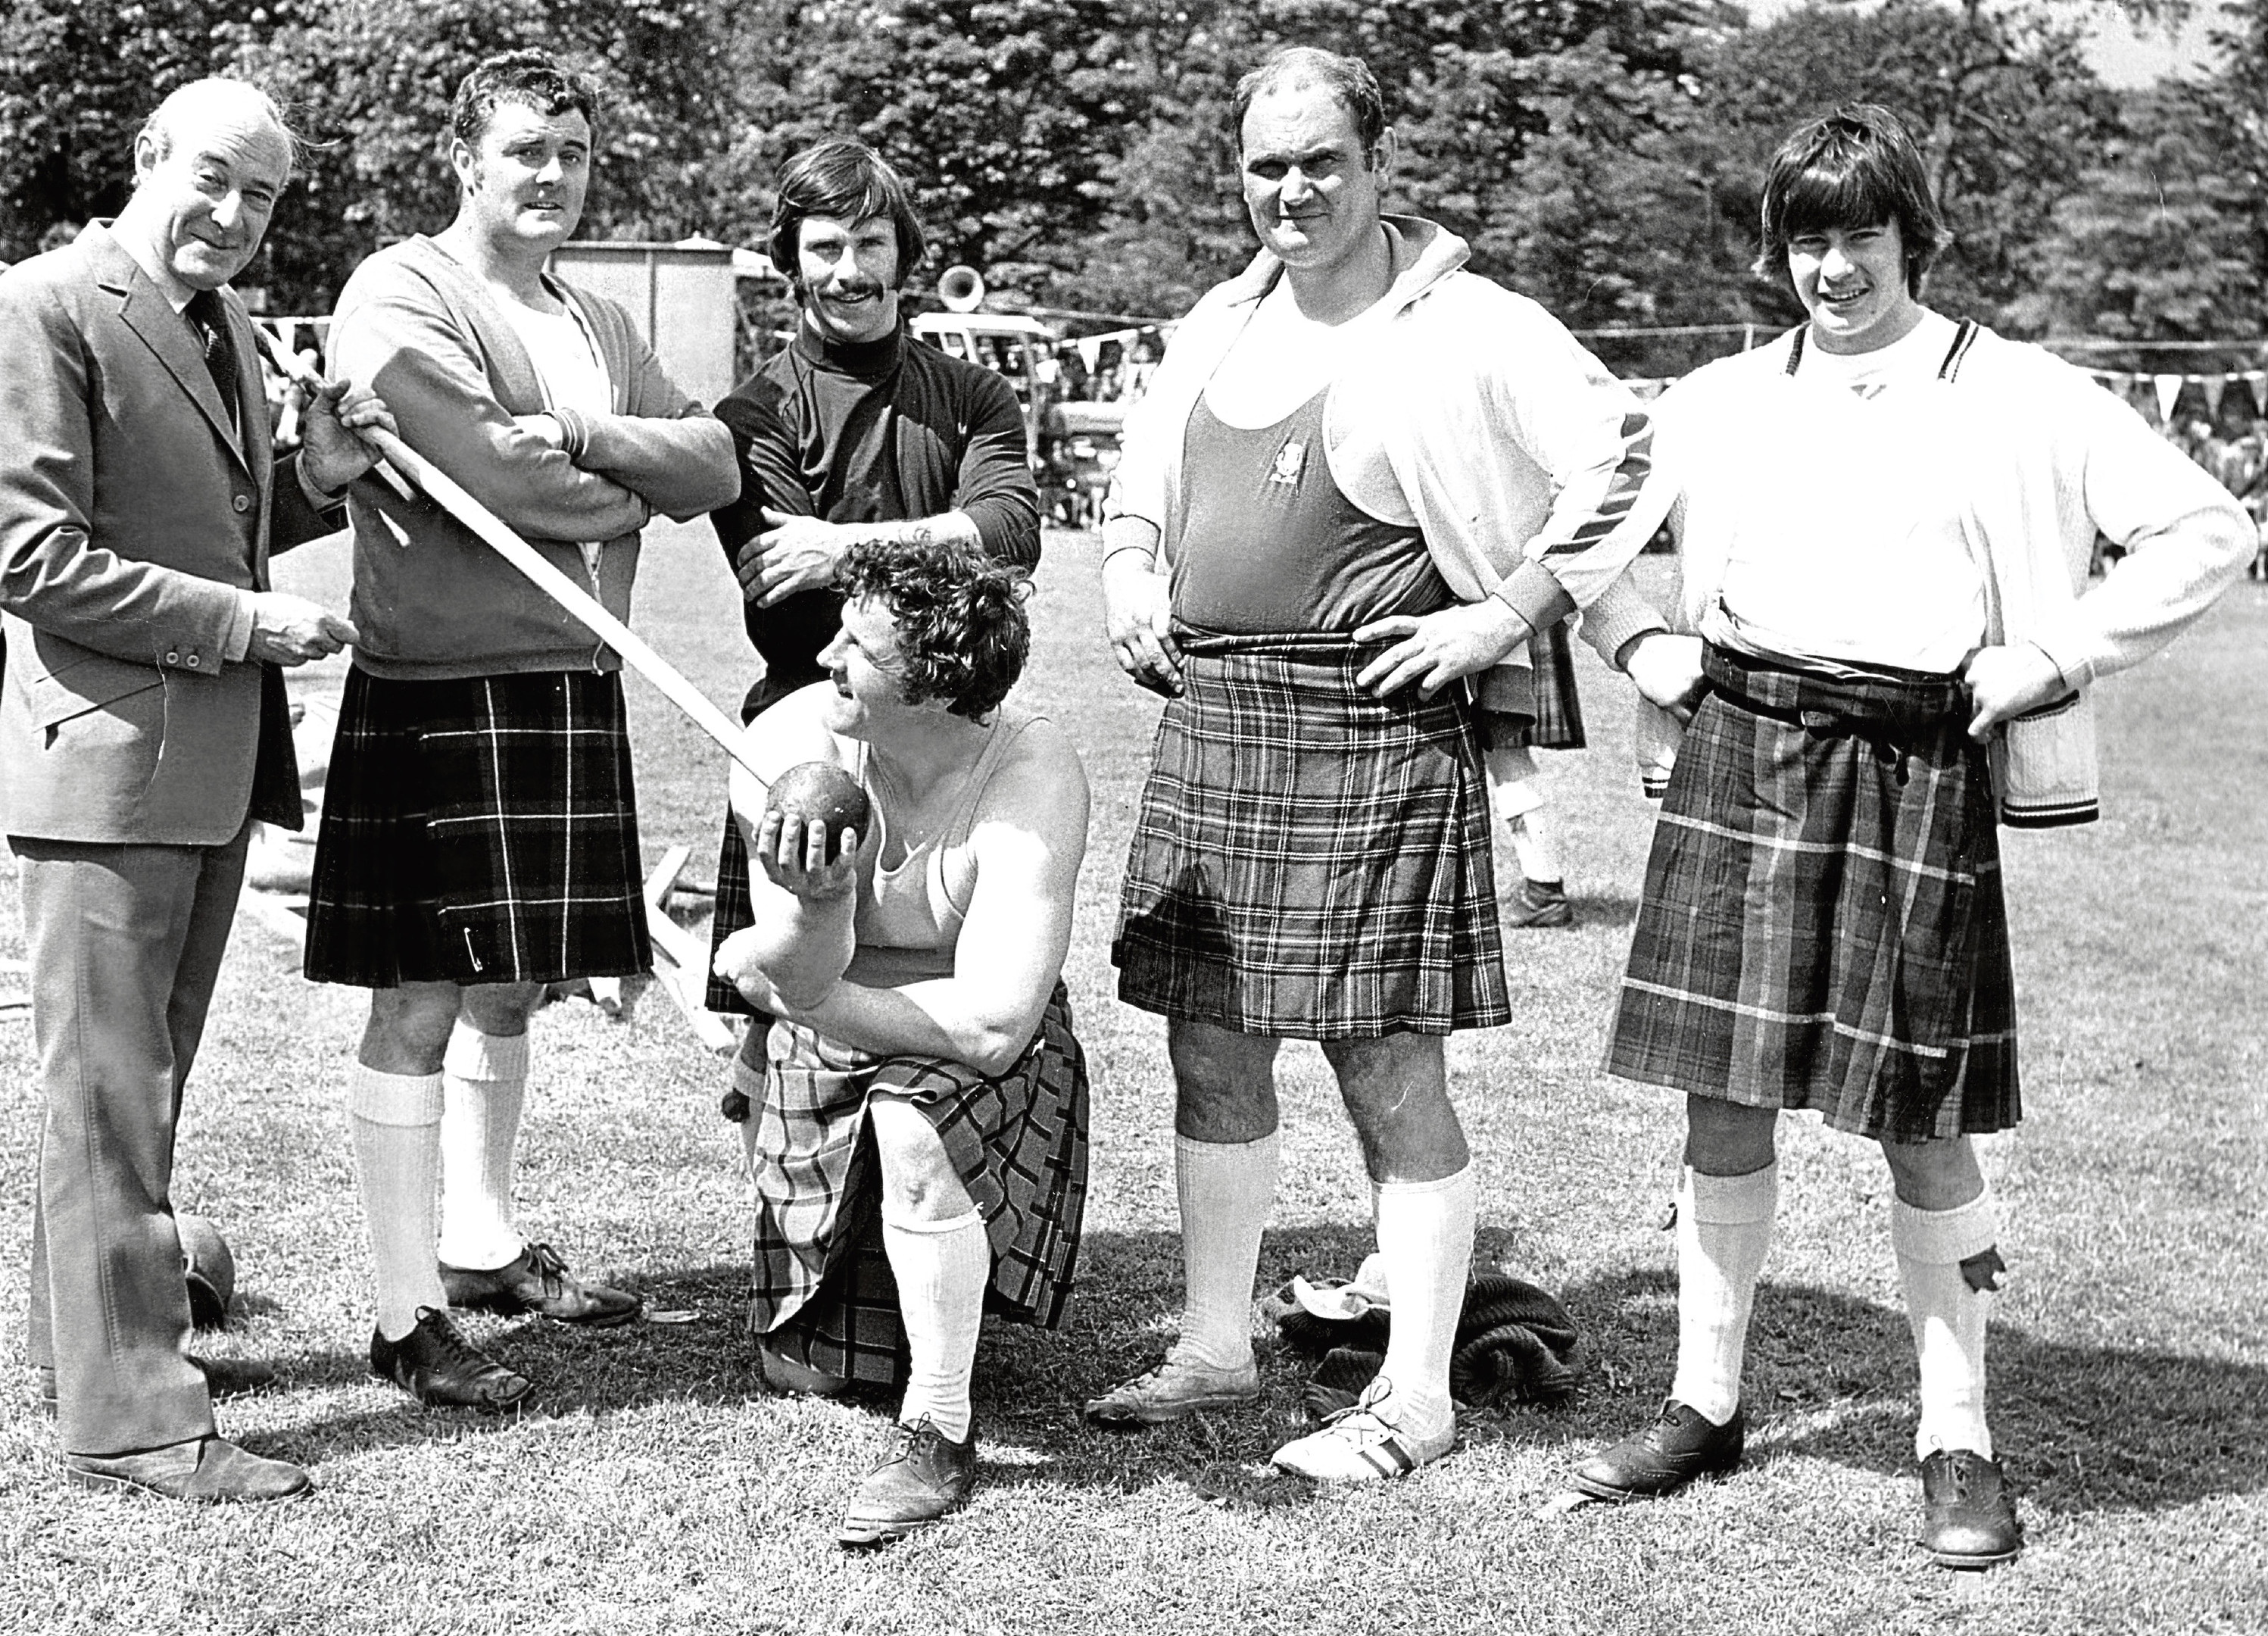 Former BBC newscaster Robert Dougall tests the weight of the heavy hammer with the help of heavy Charlie Allan, along with other heavies Ed Weighton, Colin Scott, Doug Edmonds and Murray Brown.